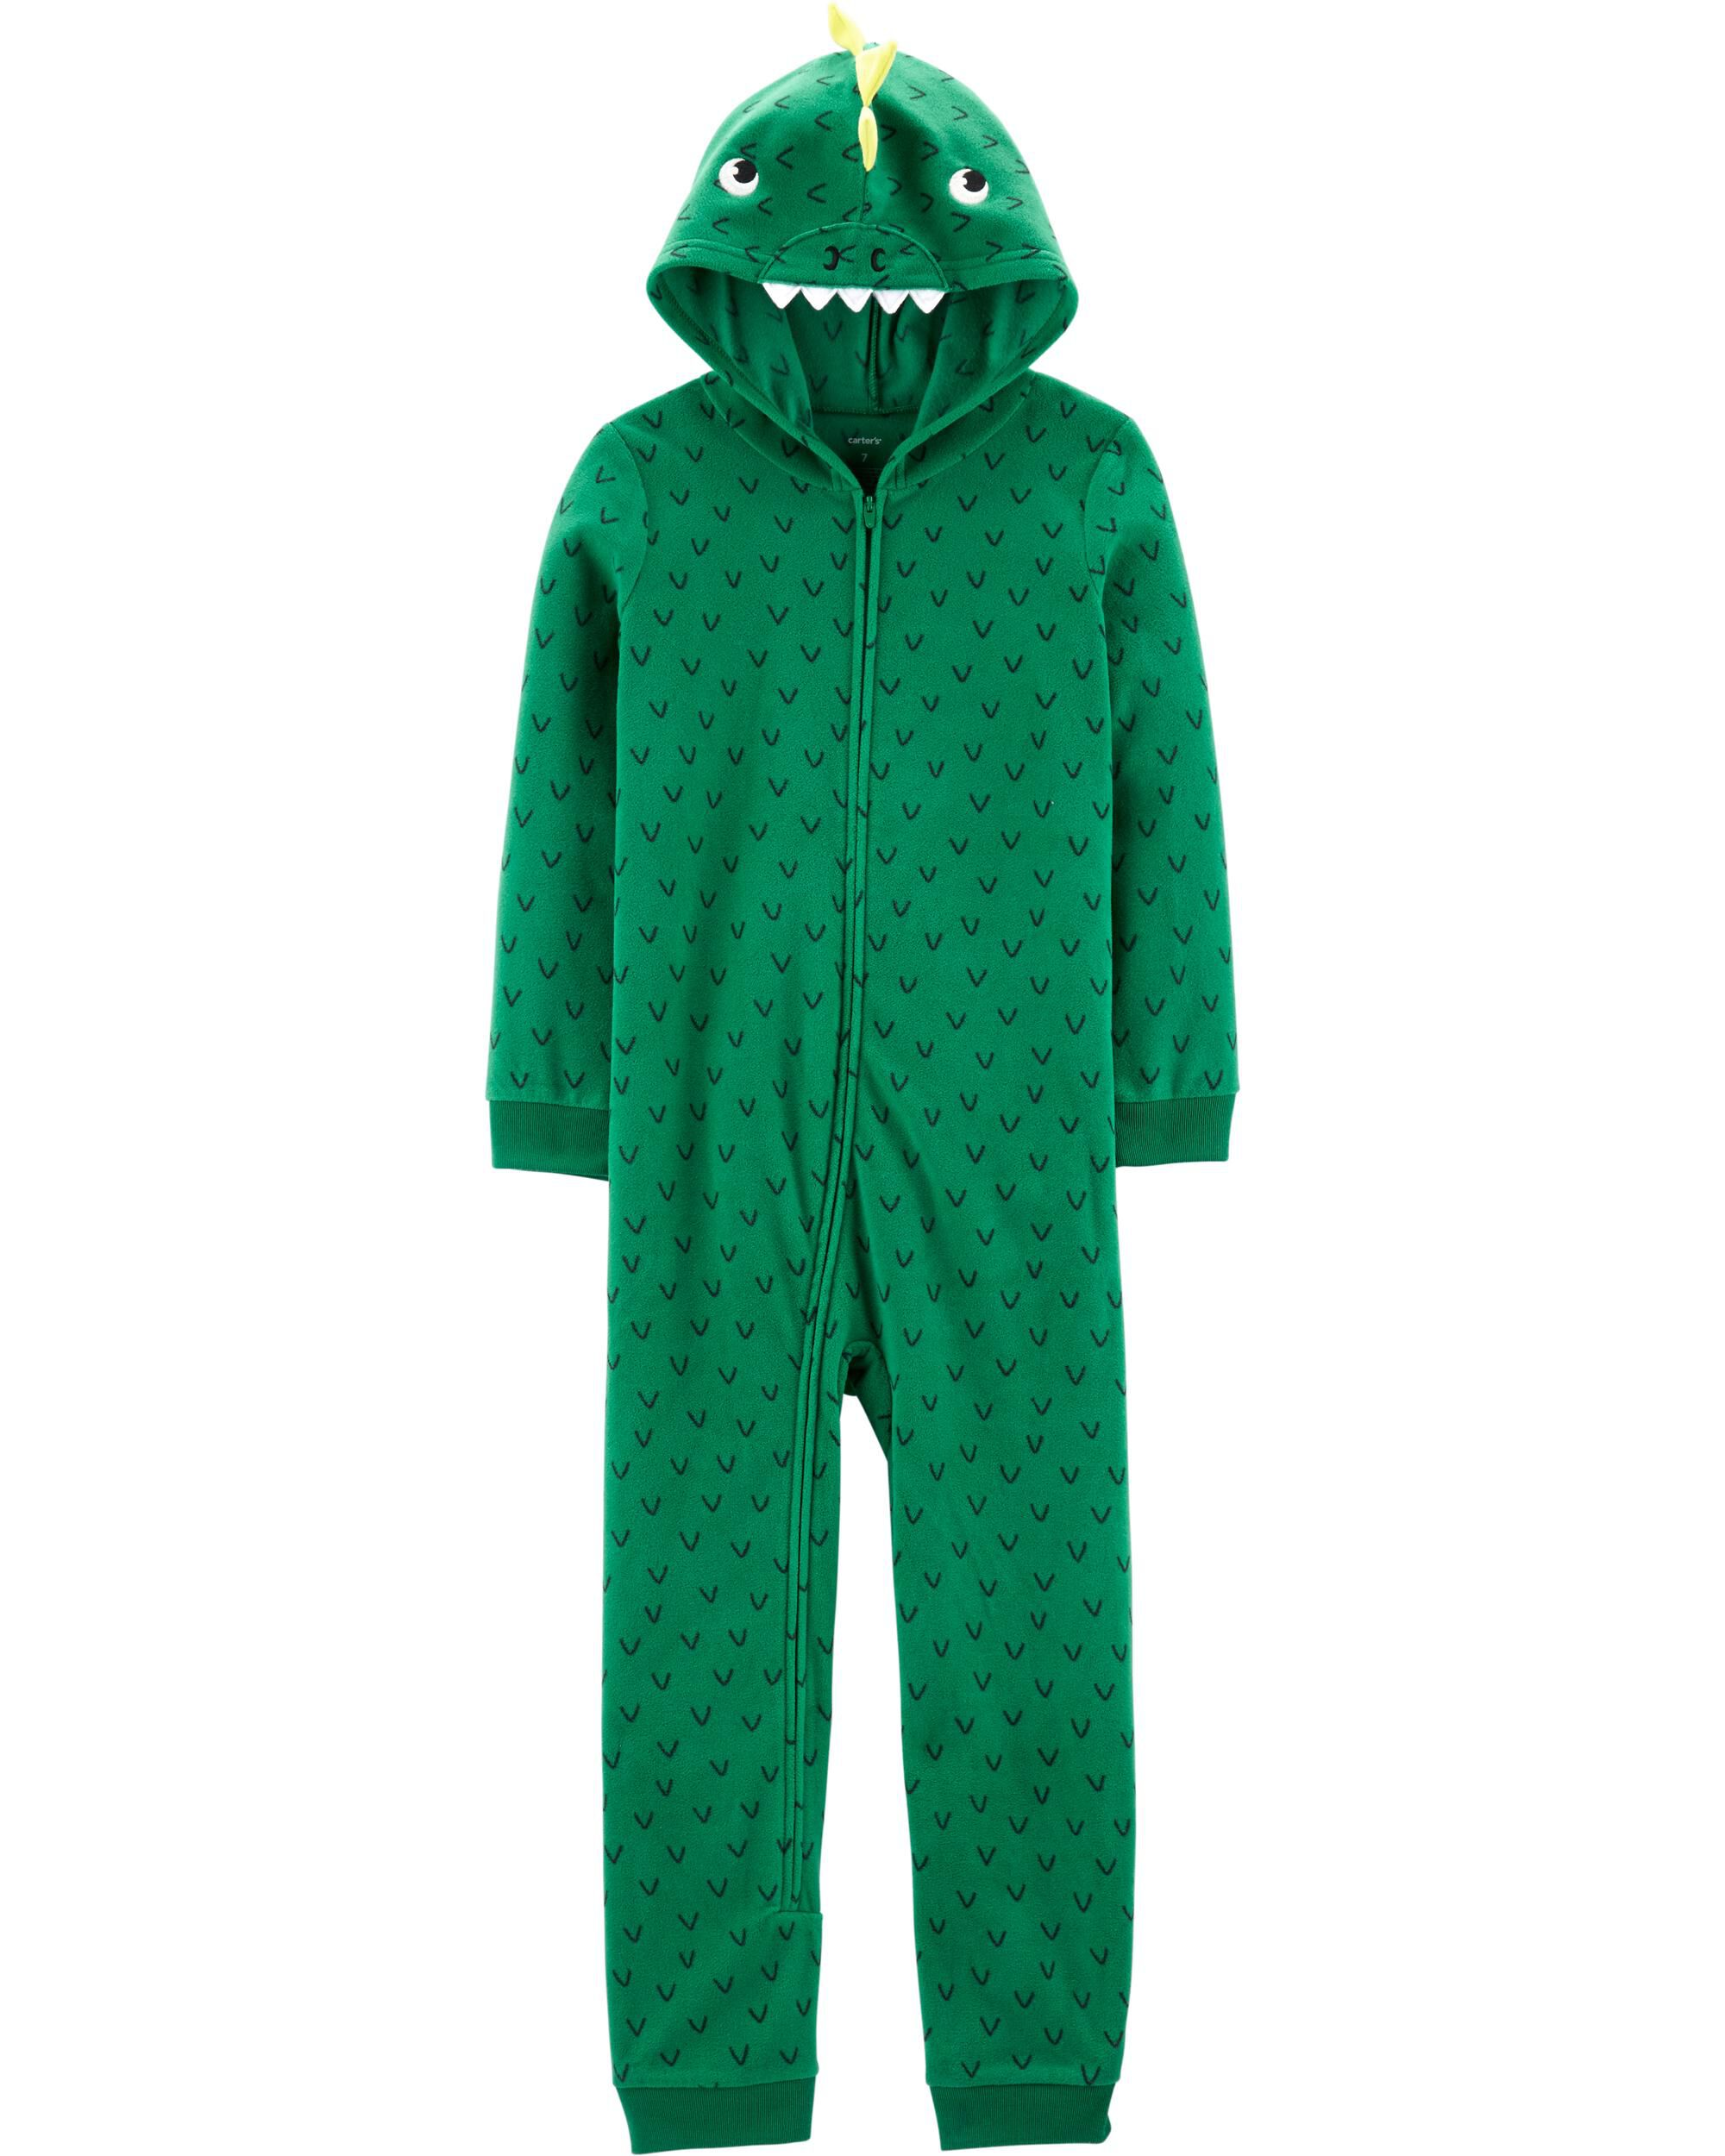 *CLEARANCE* 1-Piece Dinosaur Hooded Fleece Footless PJs